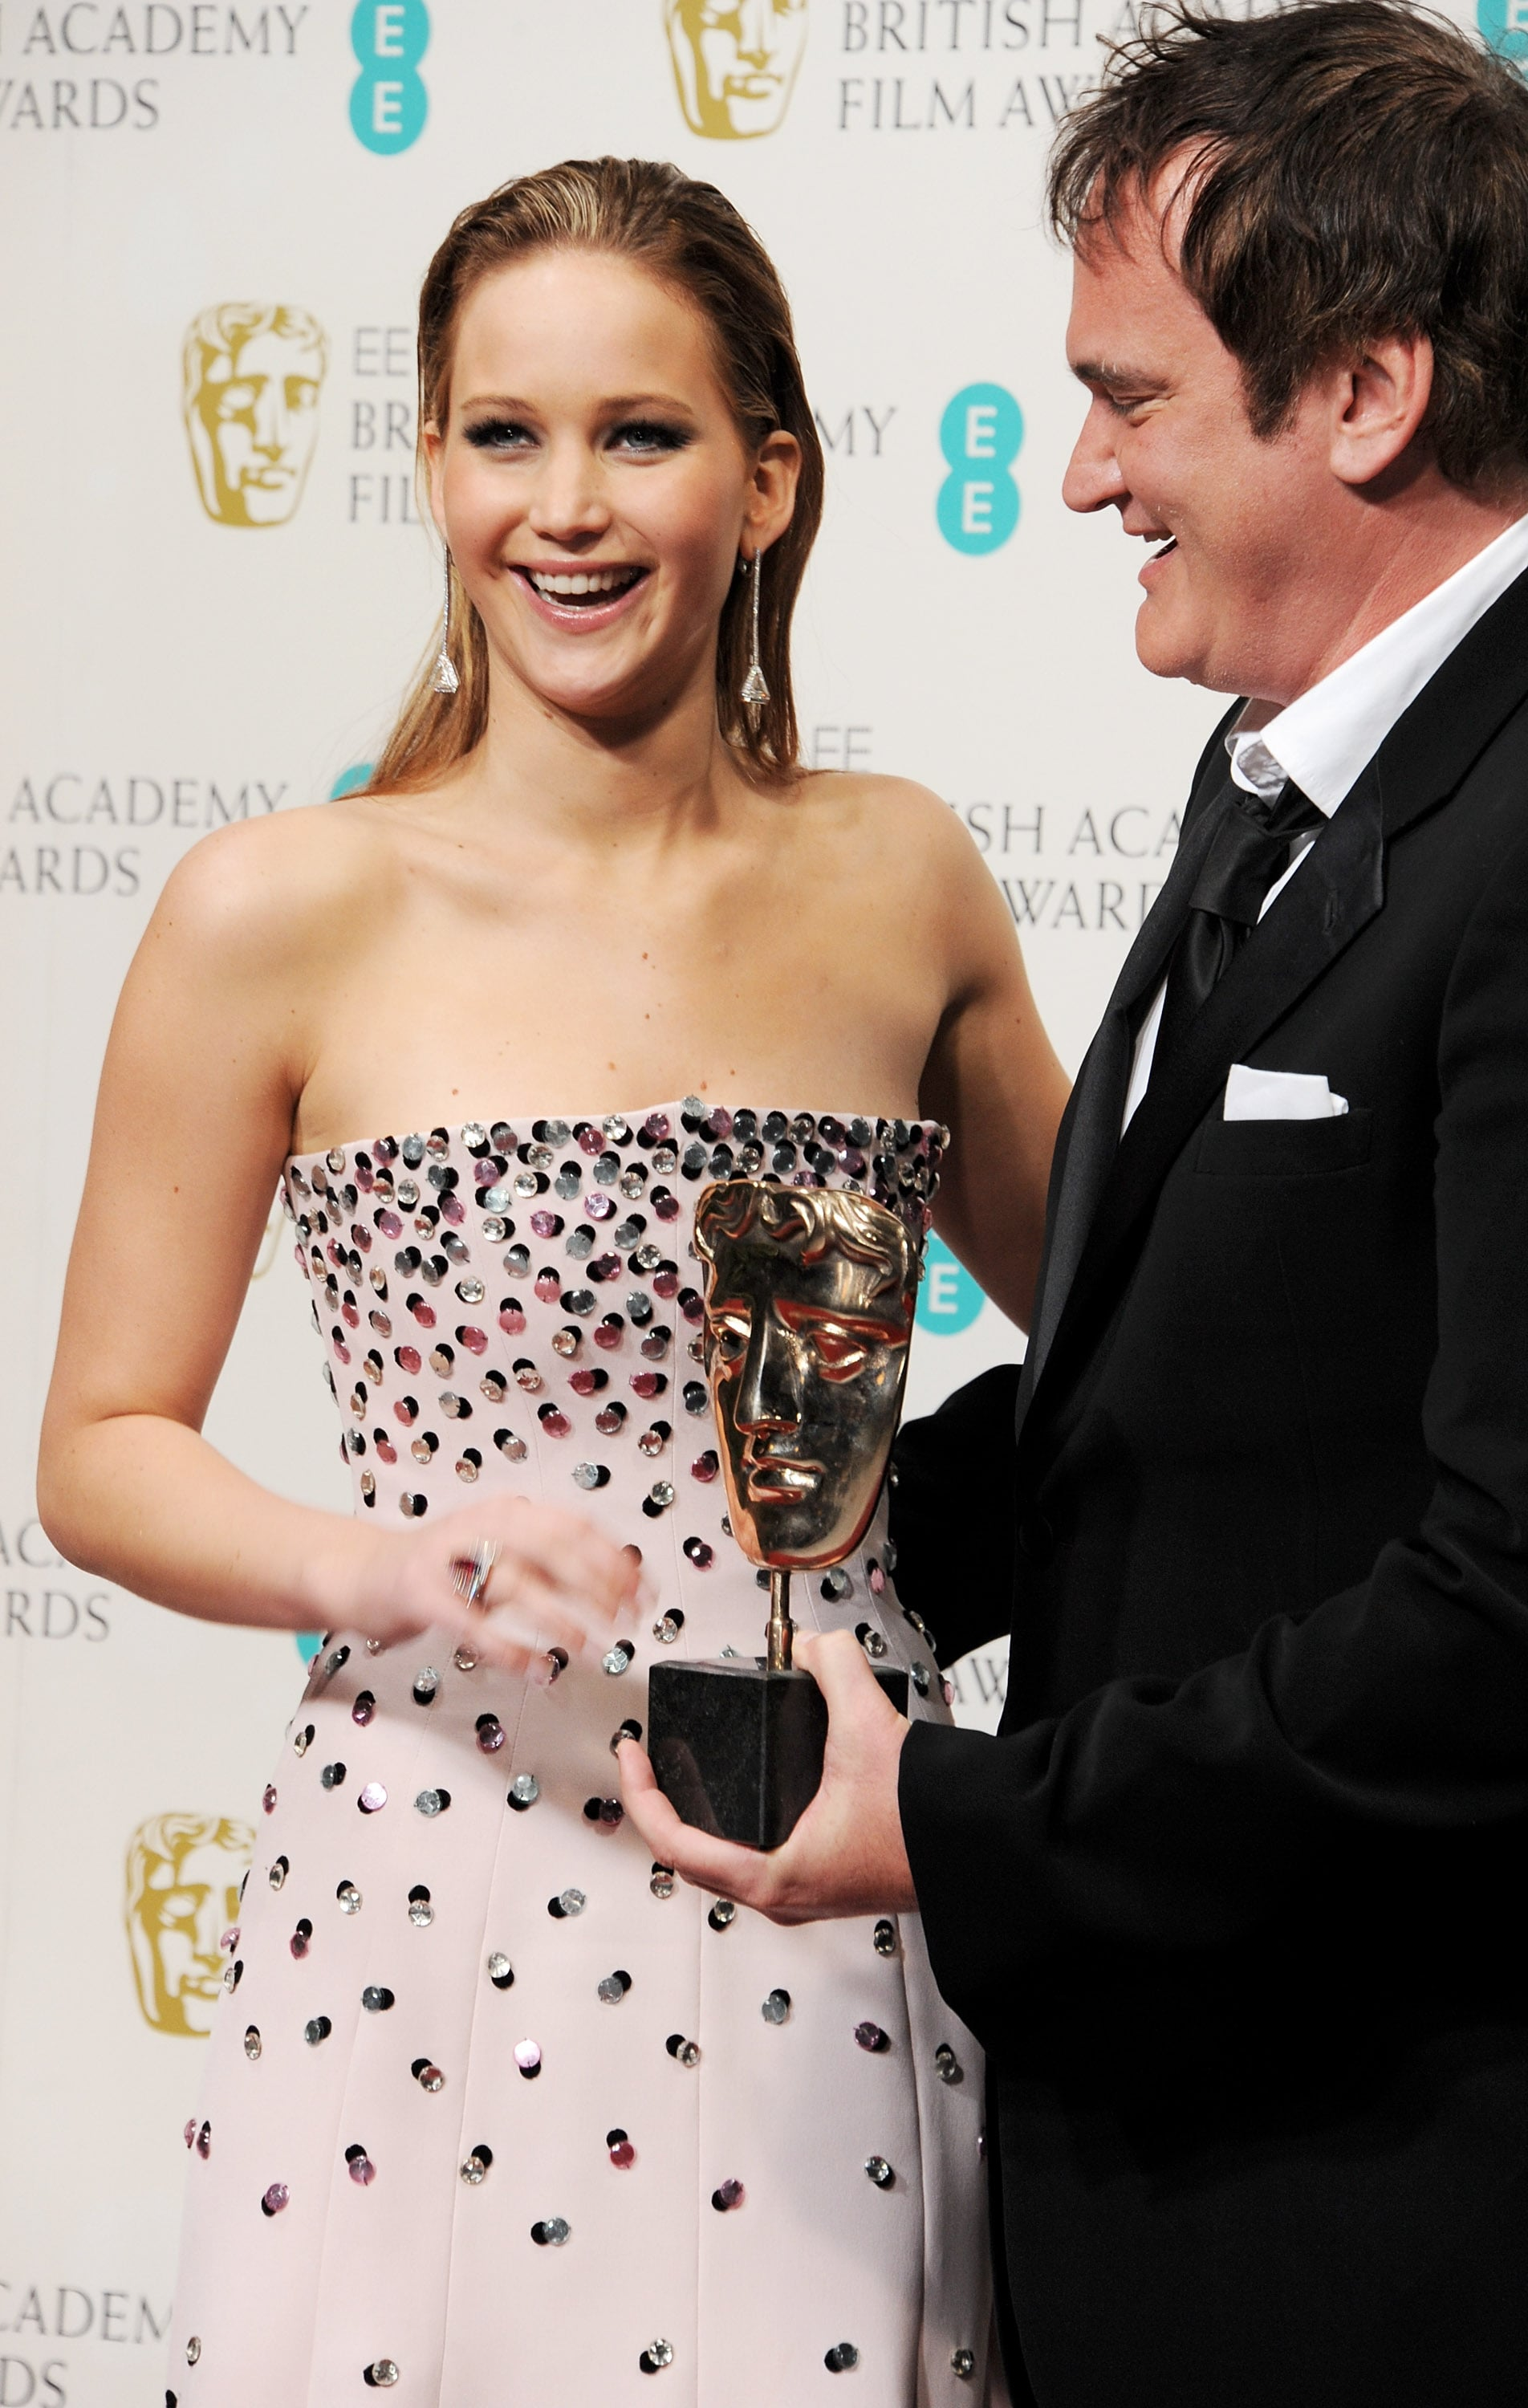 Jennifer Lawrence posed with Quentin Tarantino after presenting him with the best original screenplay award in the press room at the BAFTAs in February in London.